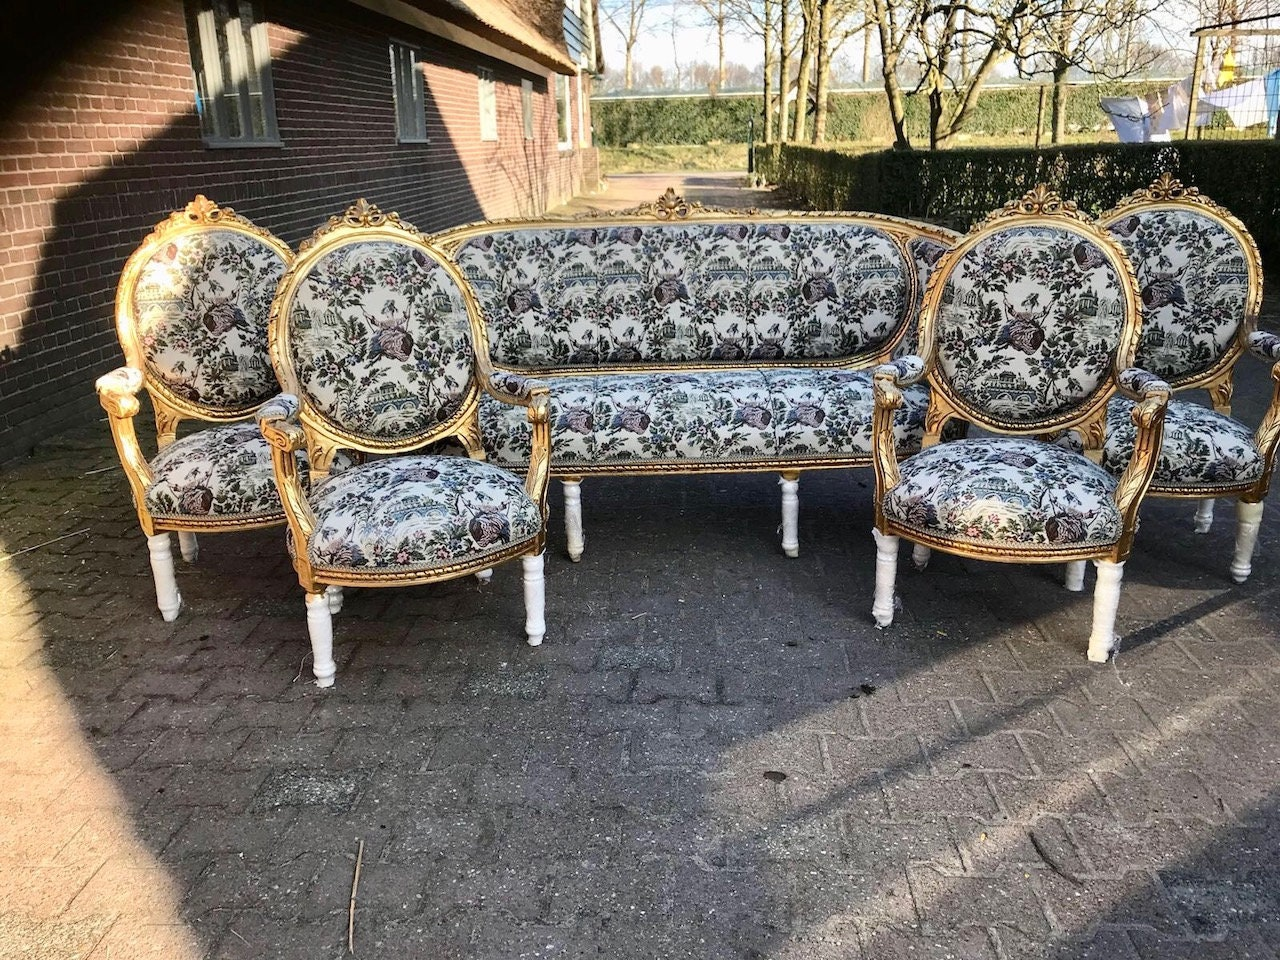 French Chairs French Furniture Settee Chairs Antique Sofa Furniture French Tufted Chair Refinish Gold Leaf Tufted Cream Off White Fabric & French Chairs French Furniture Settee Chairs Antique Sofa Furniture ...